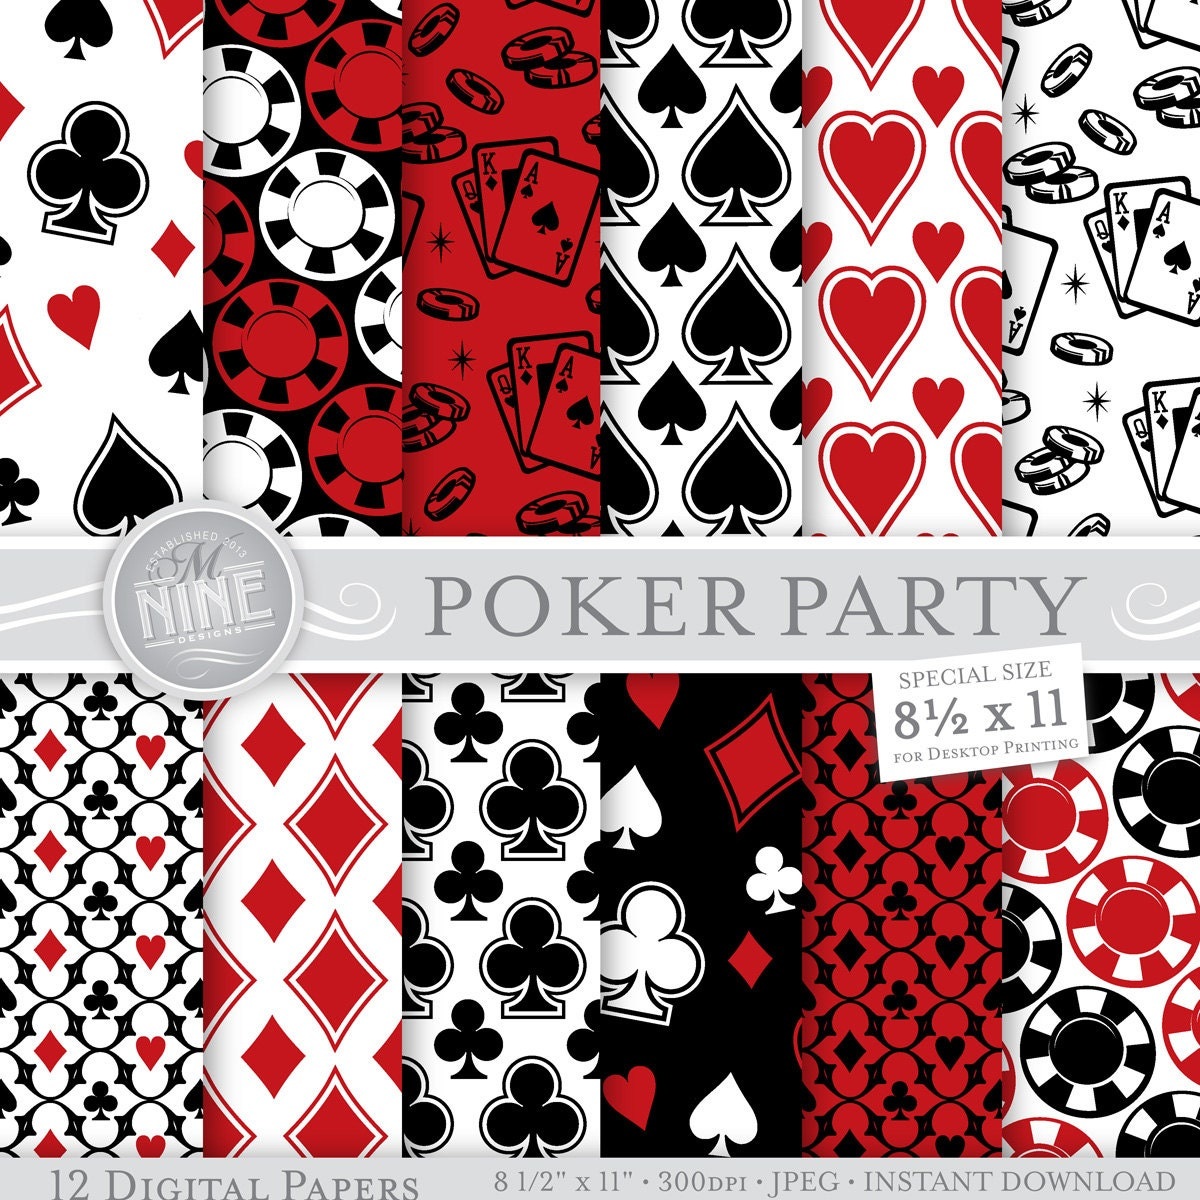 poker essays review Book review of poker, gaming and life by david sklansky review of poker,  this is the latest collection of essays by poker expert extraordinaire david sklansky.